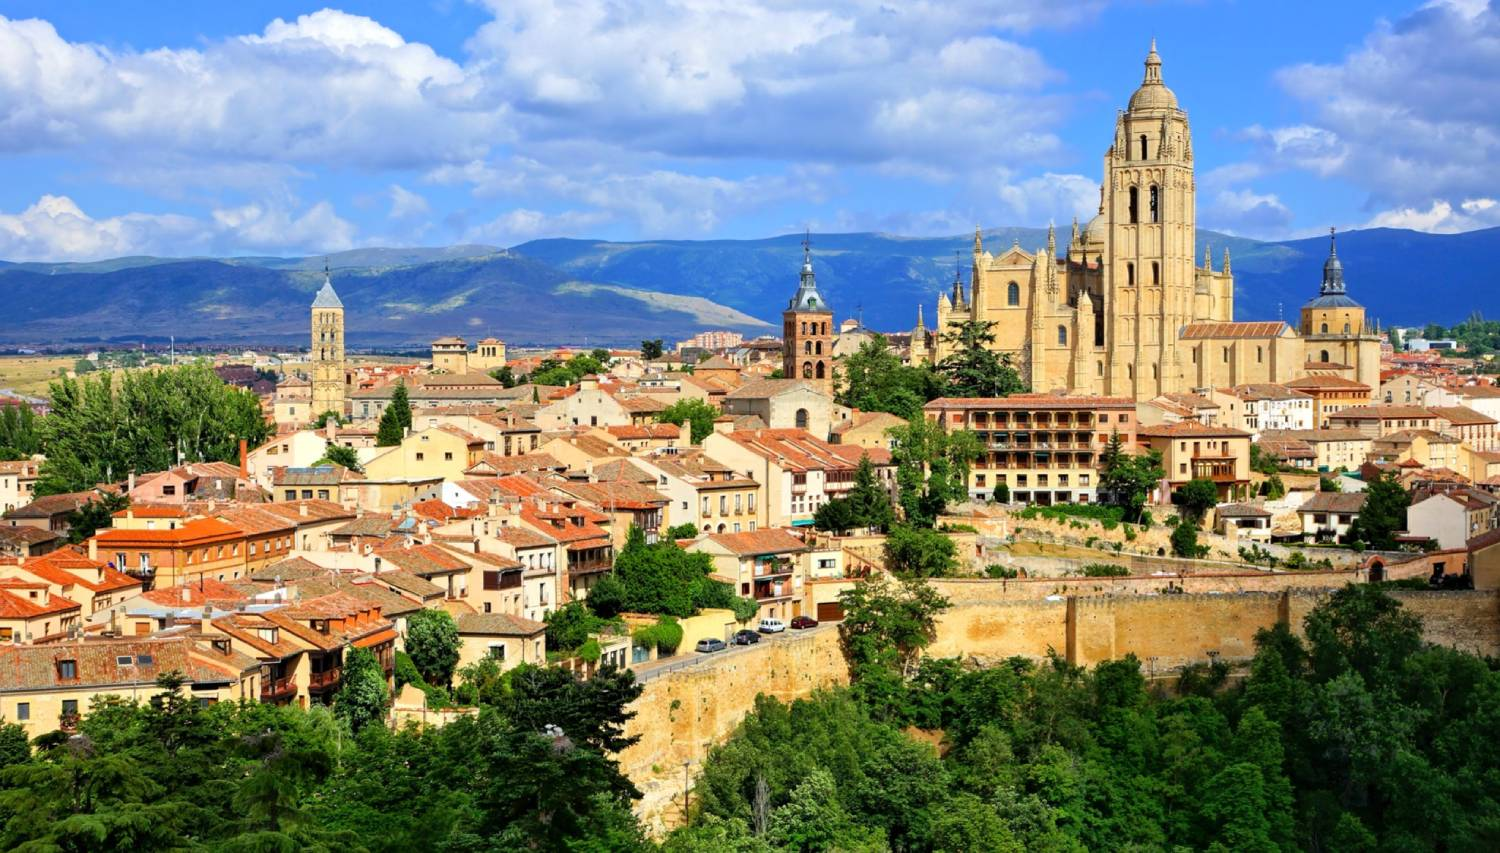 Segovia - The Best Places To Visit In Spain